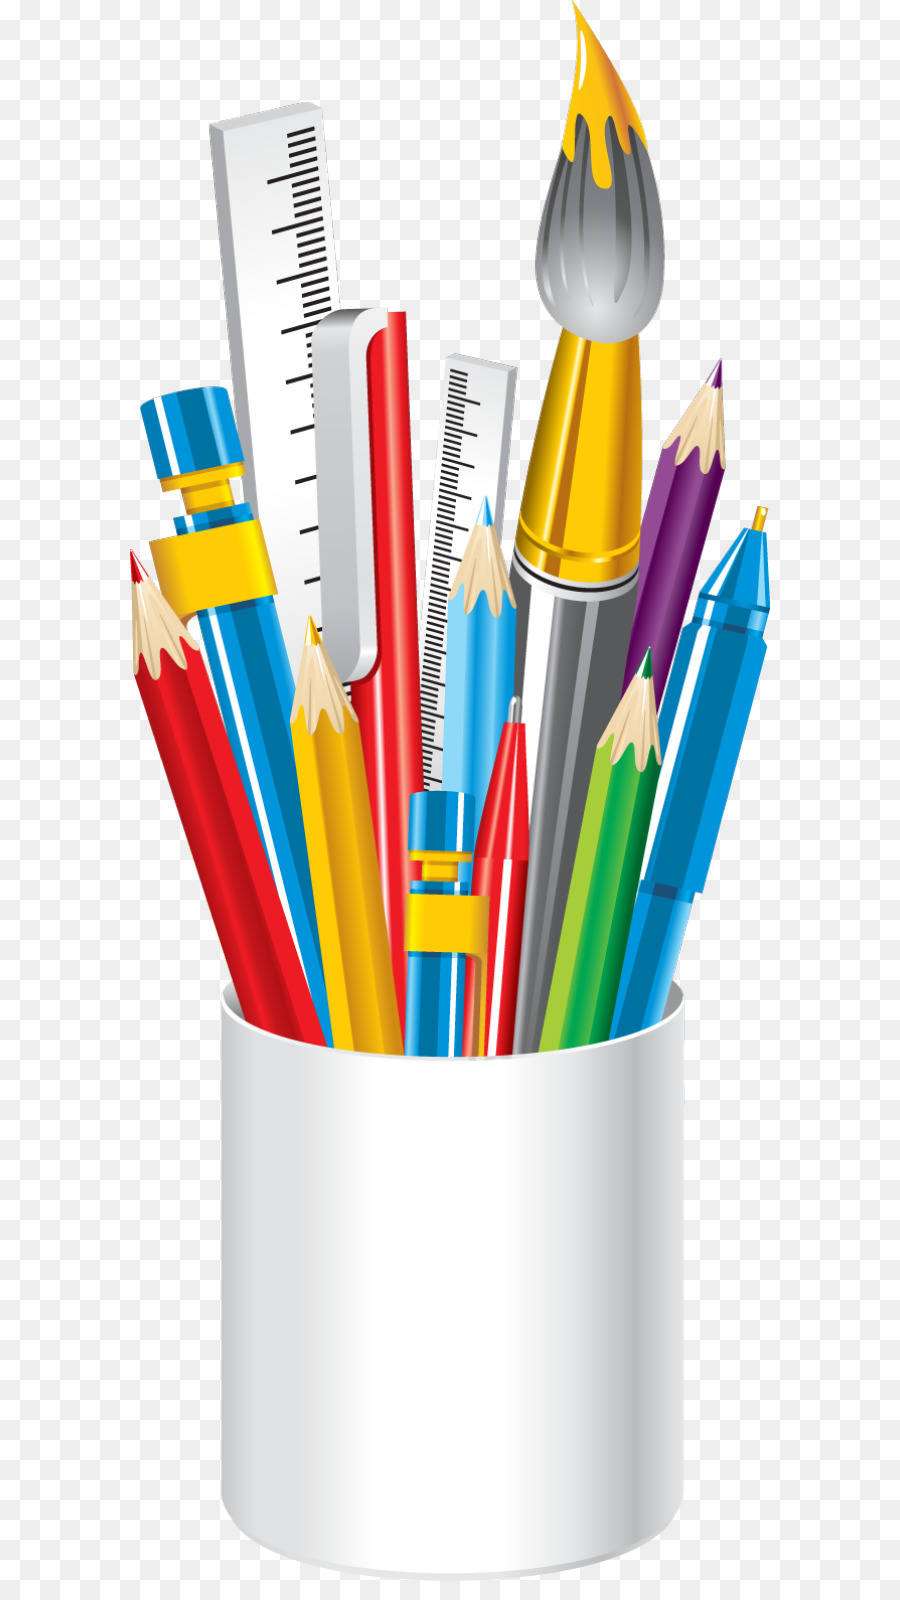 Png Of Art Supplies & Free Of Art Supplies.png Transparent Images.